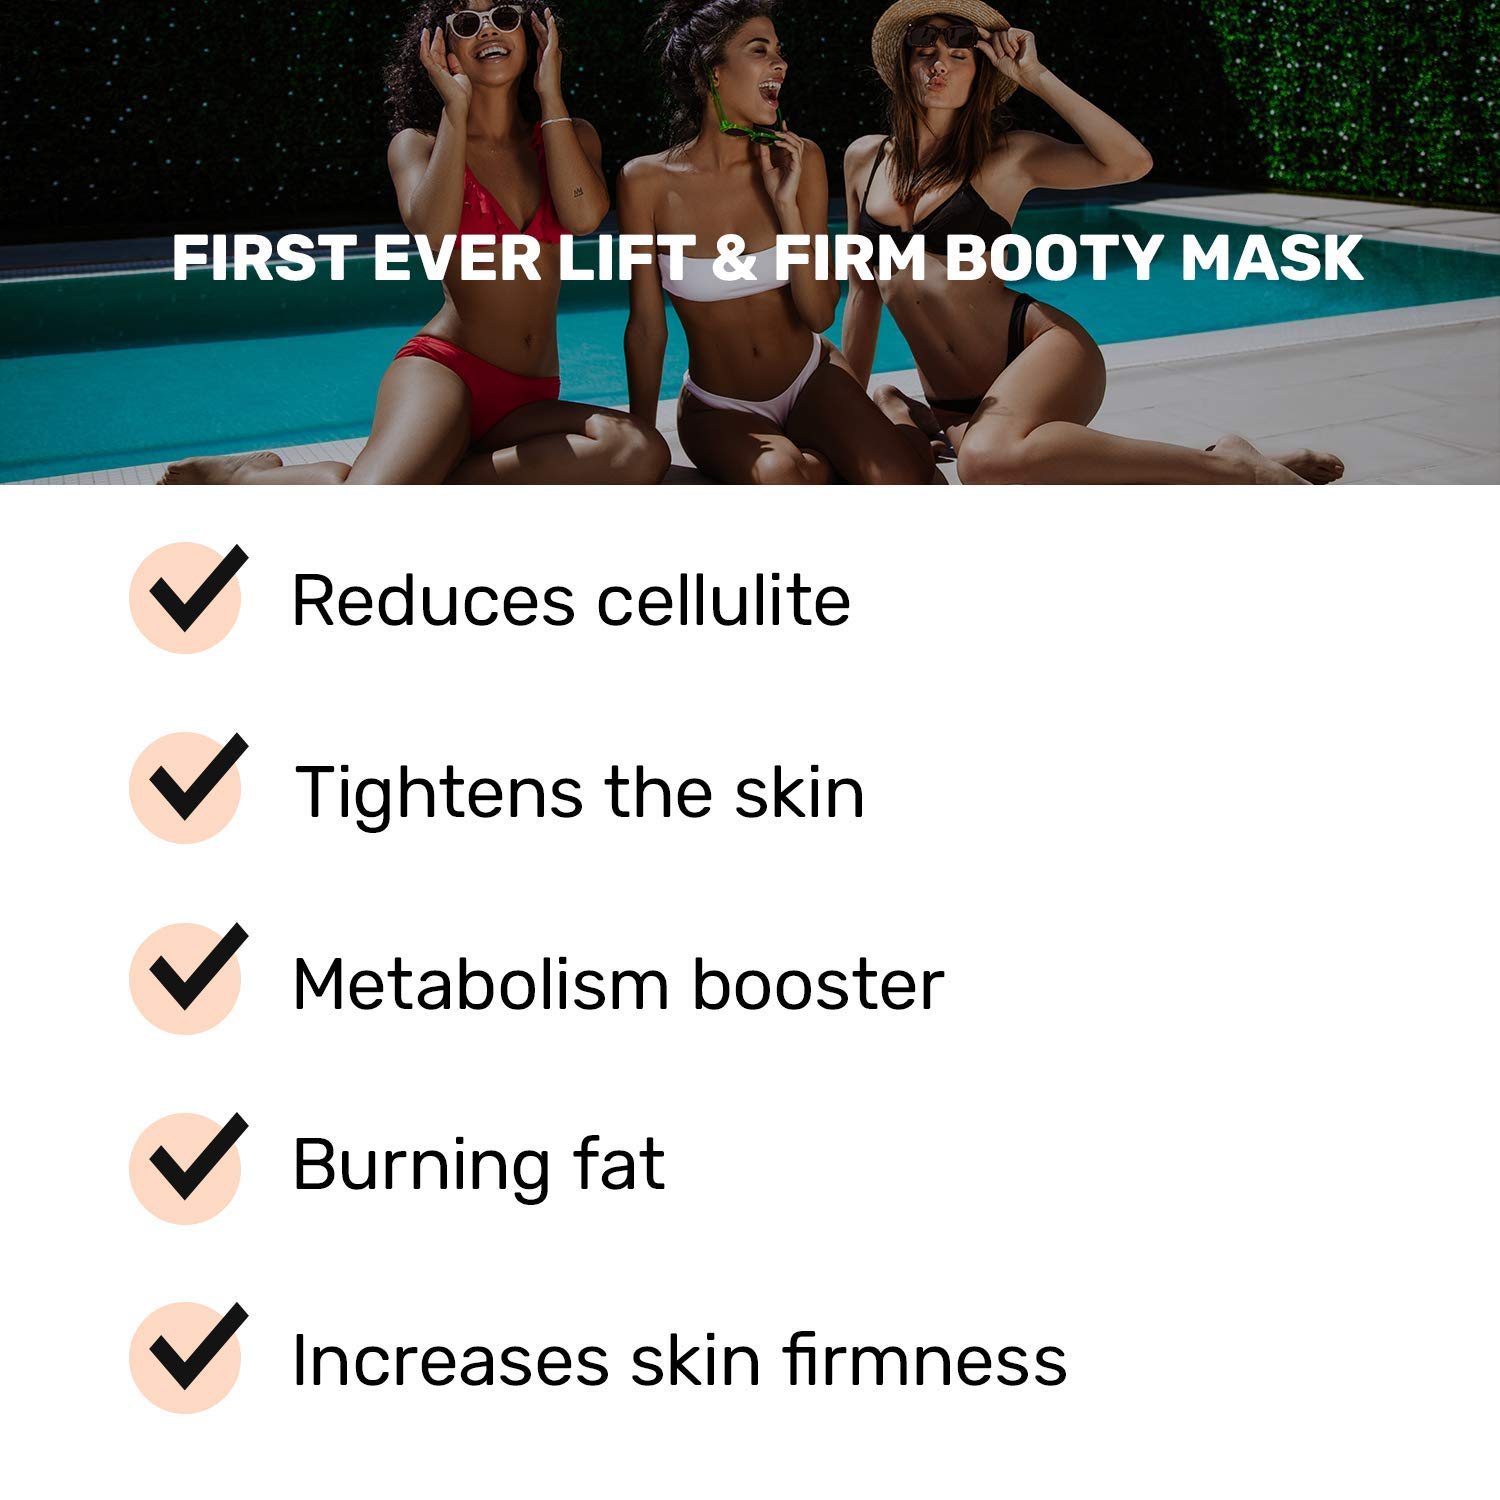 B-Tight Cellulite Removal Cream - Anti Cellulite Skin Firming Treatment for Butt & Thighs, Burns Fat, Lifts & Firms 3.8 oz by MAELYS Cosmetics (Image #2)